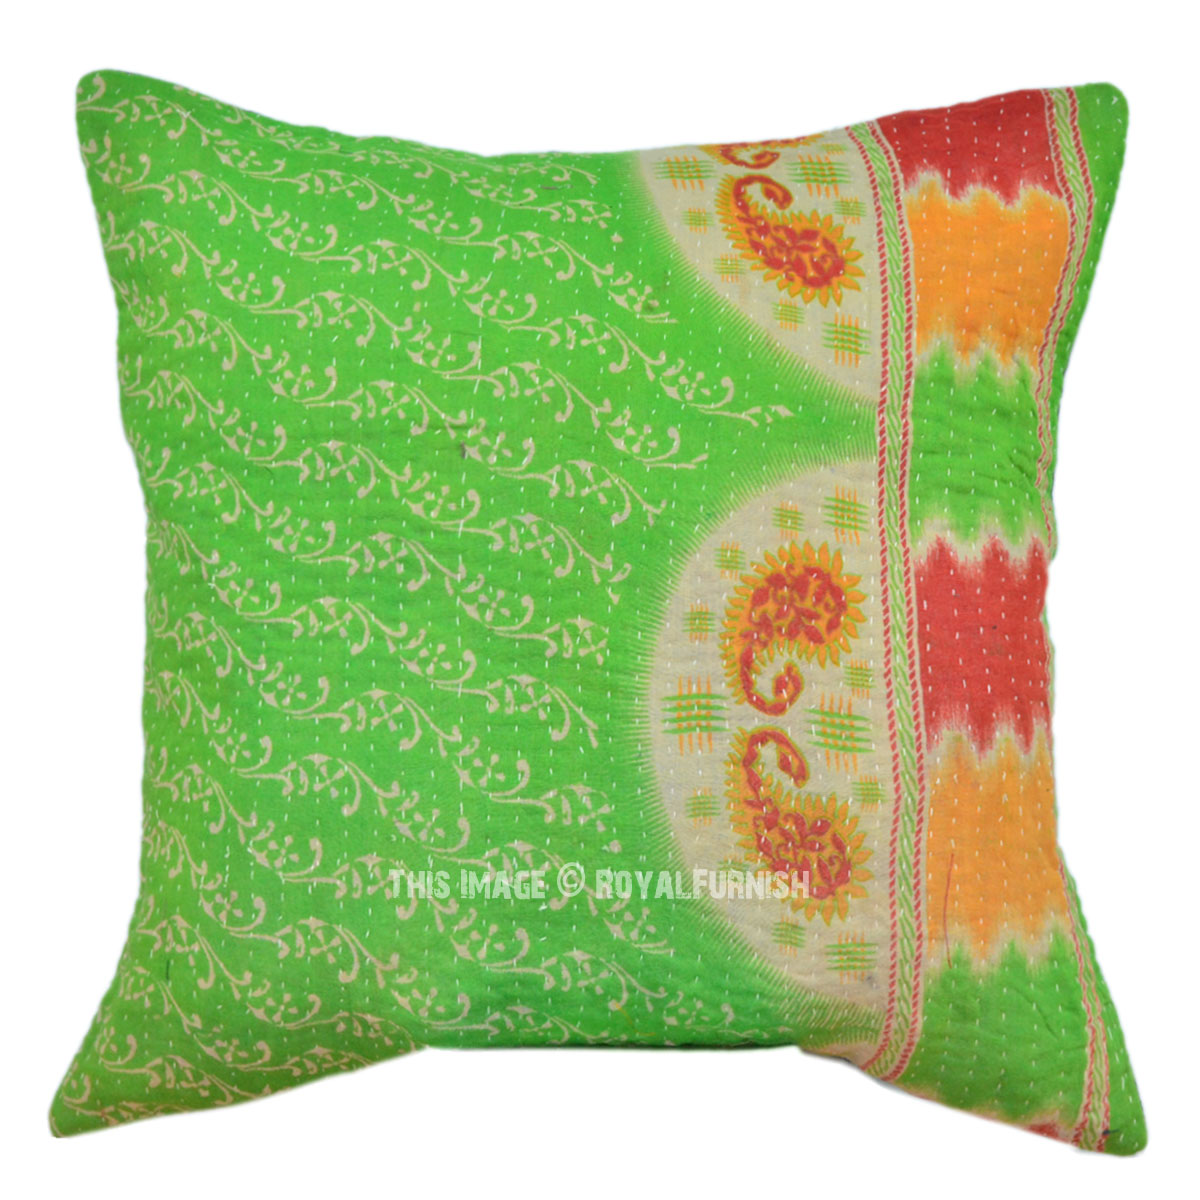 Light Green Decorative Pillow : 40x40 Light Green Multicolor Kantha Throw Pillow Cover - RoyalFurnish.com